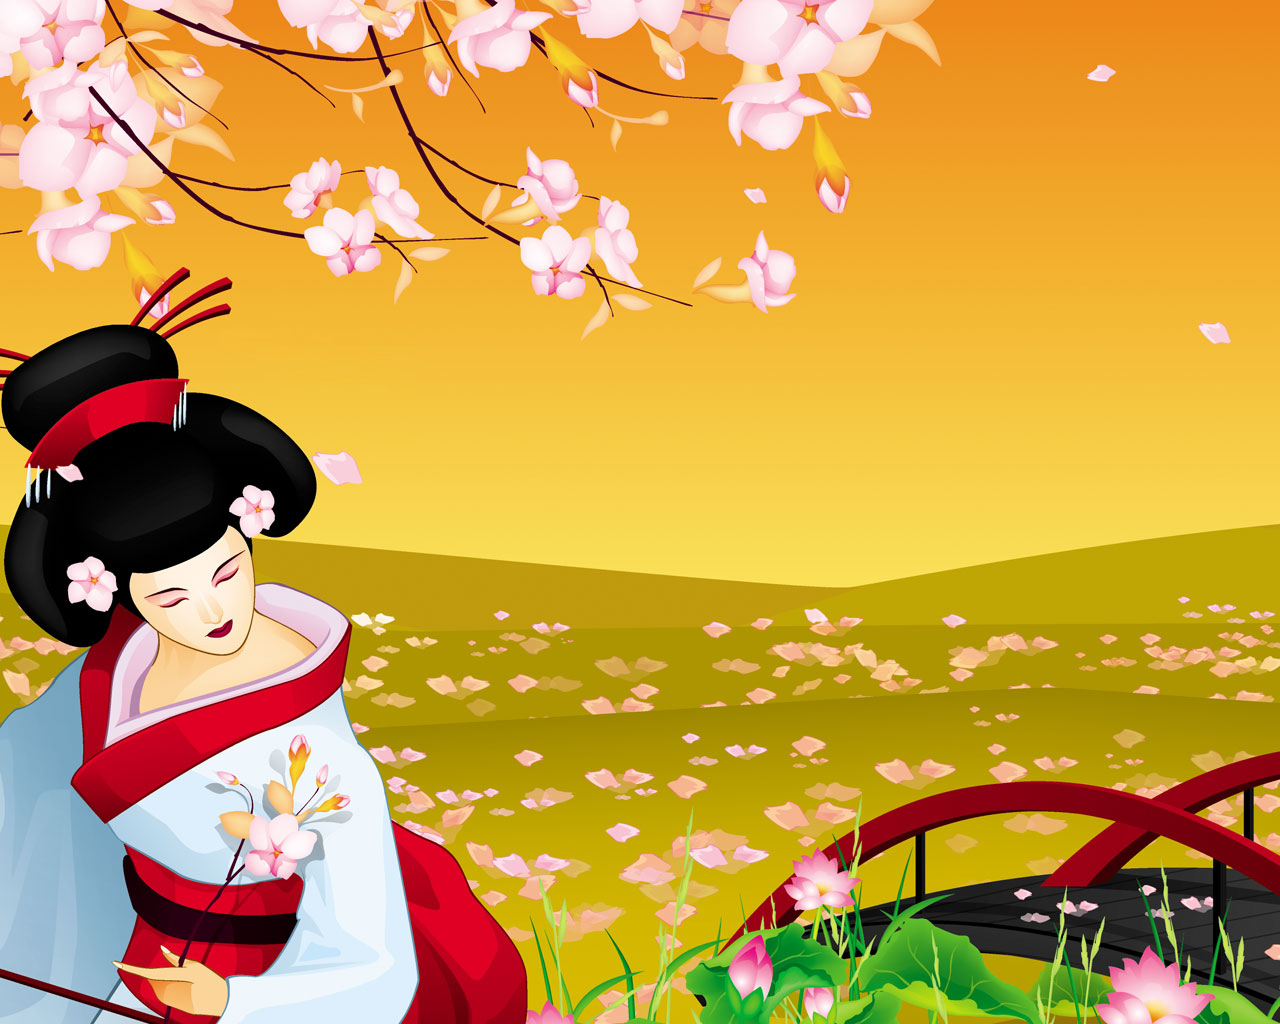 geisha illustration wallpaper image